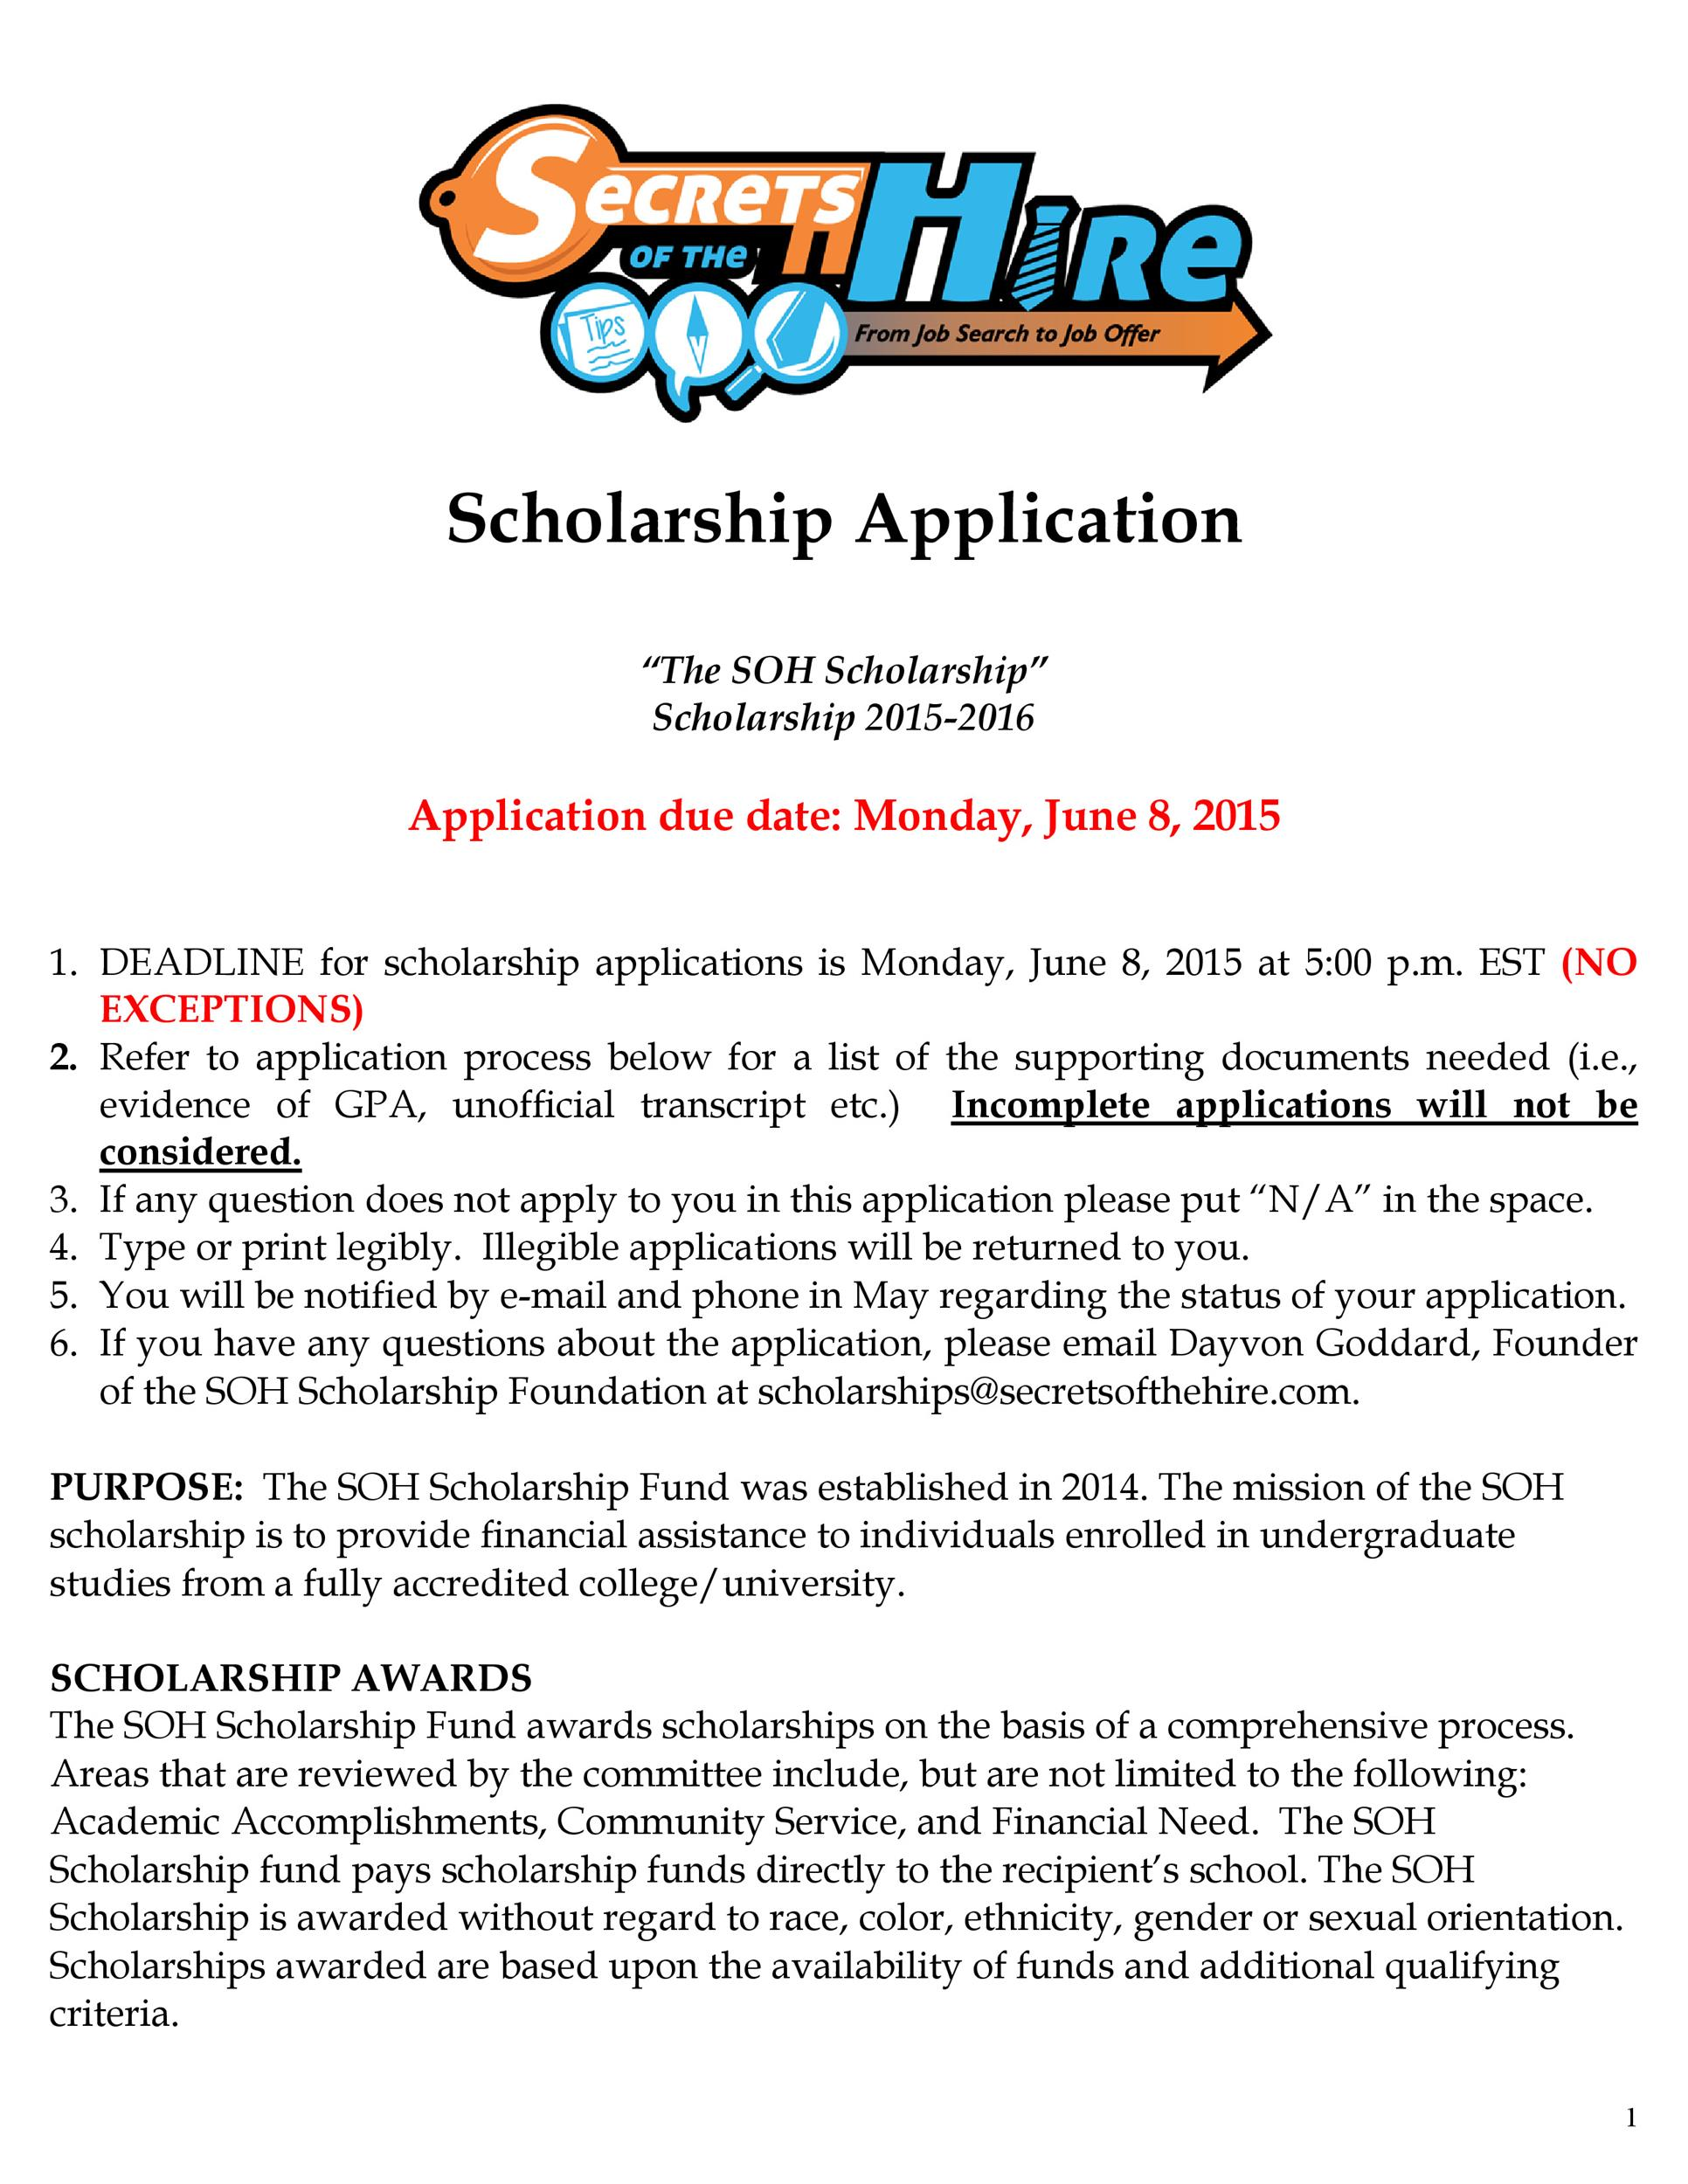 Free Scholarship Application Template 50